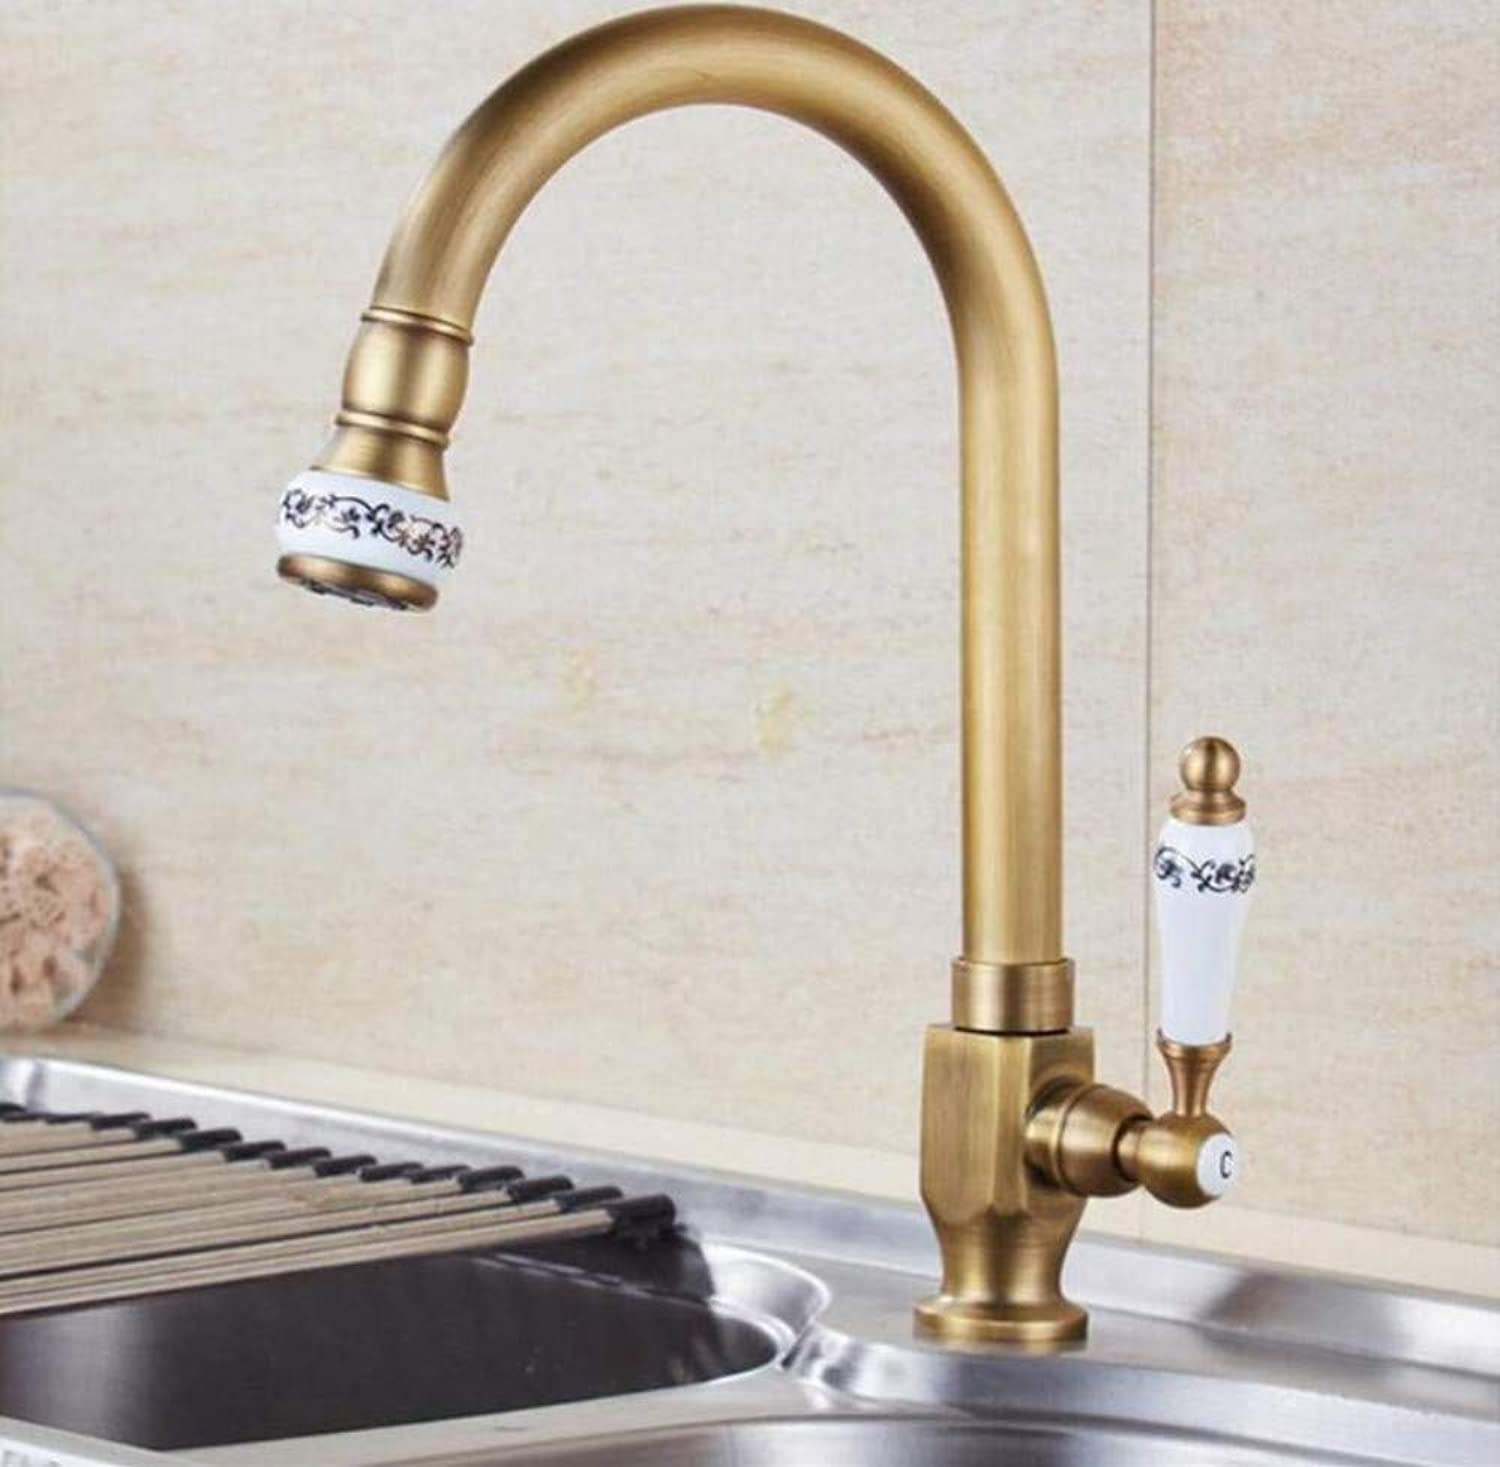 Brass Chrome Hot and Cold Water Brass Ceramic Kitchen Faucet Single Cold Water Faucet Deck Mounted Swivel Sink Tap